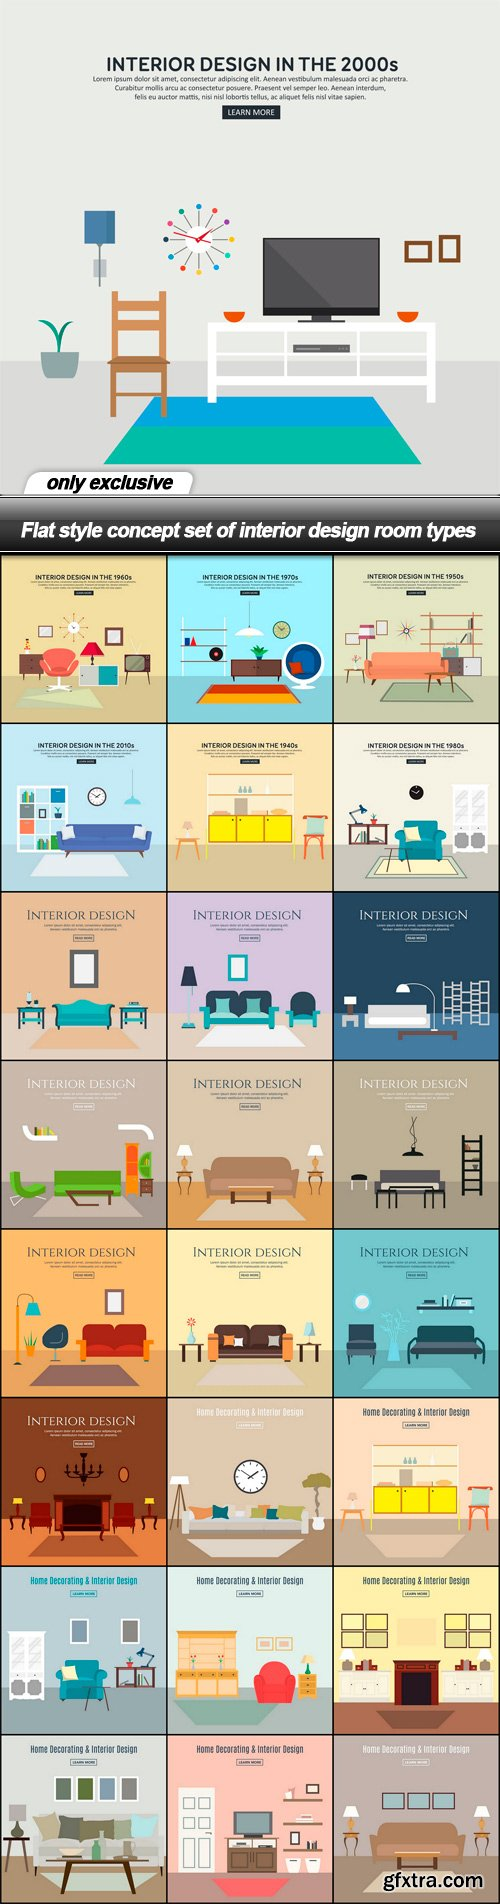 Flat style concept set of interior design room types - 25 EPS